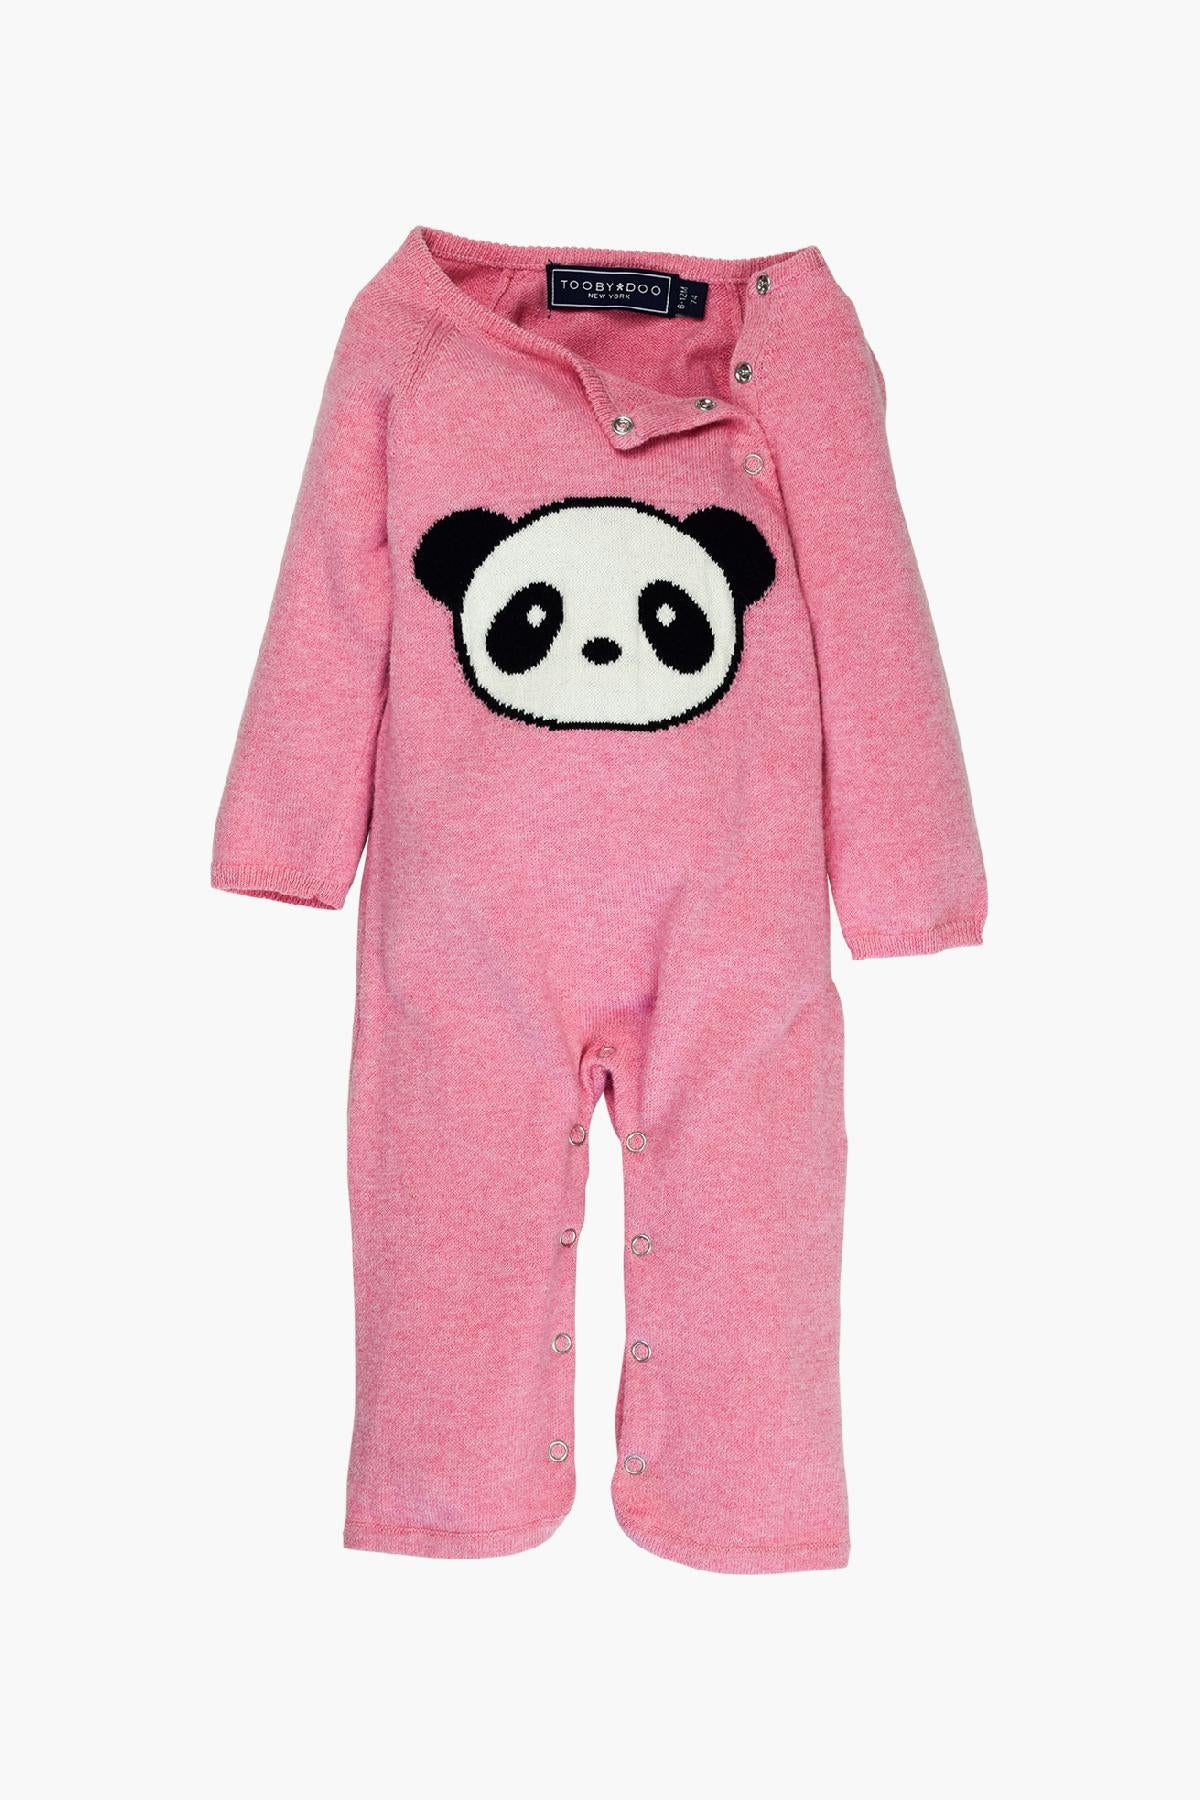 Toobydoo Cashmere Panda Jumpsuit - Pink